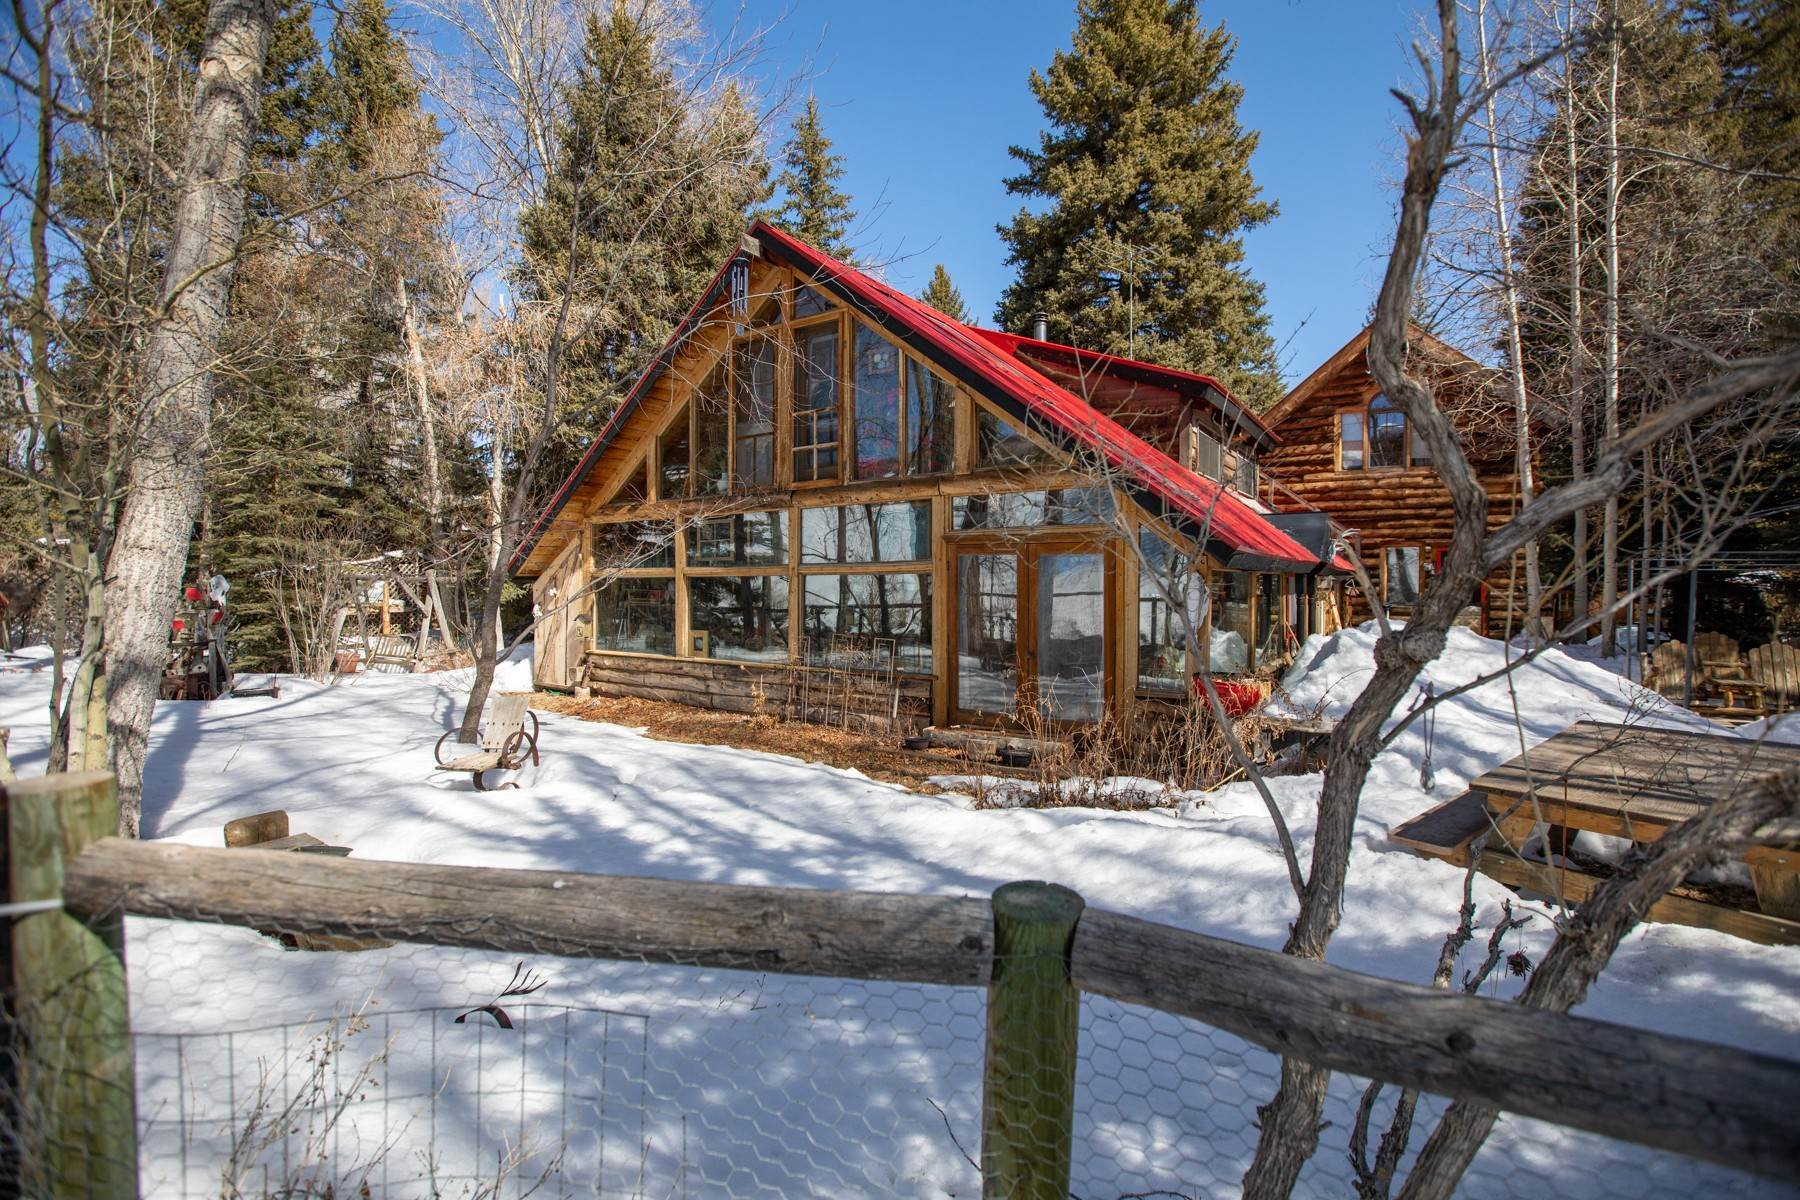 Single Family Homes for Sale at Quaint Cabin on the East River 170 Lower Allen Road Crested Butte, Colorado 81224 United States